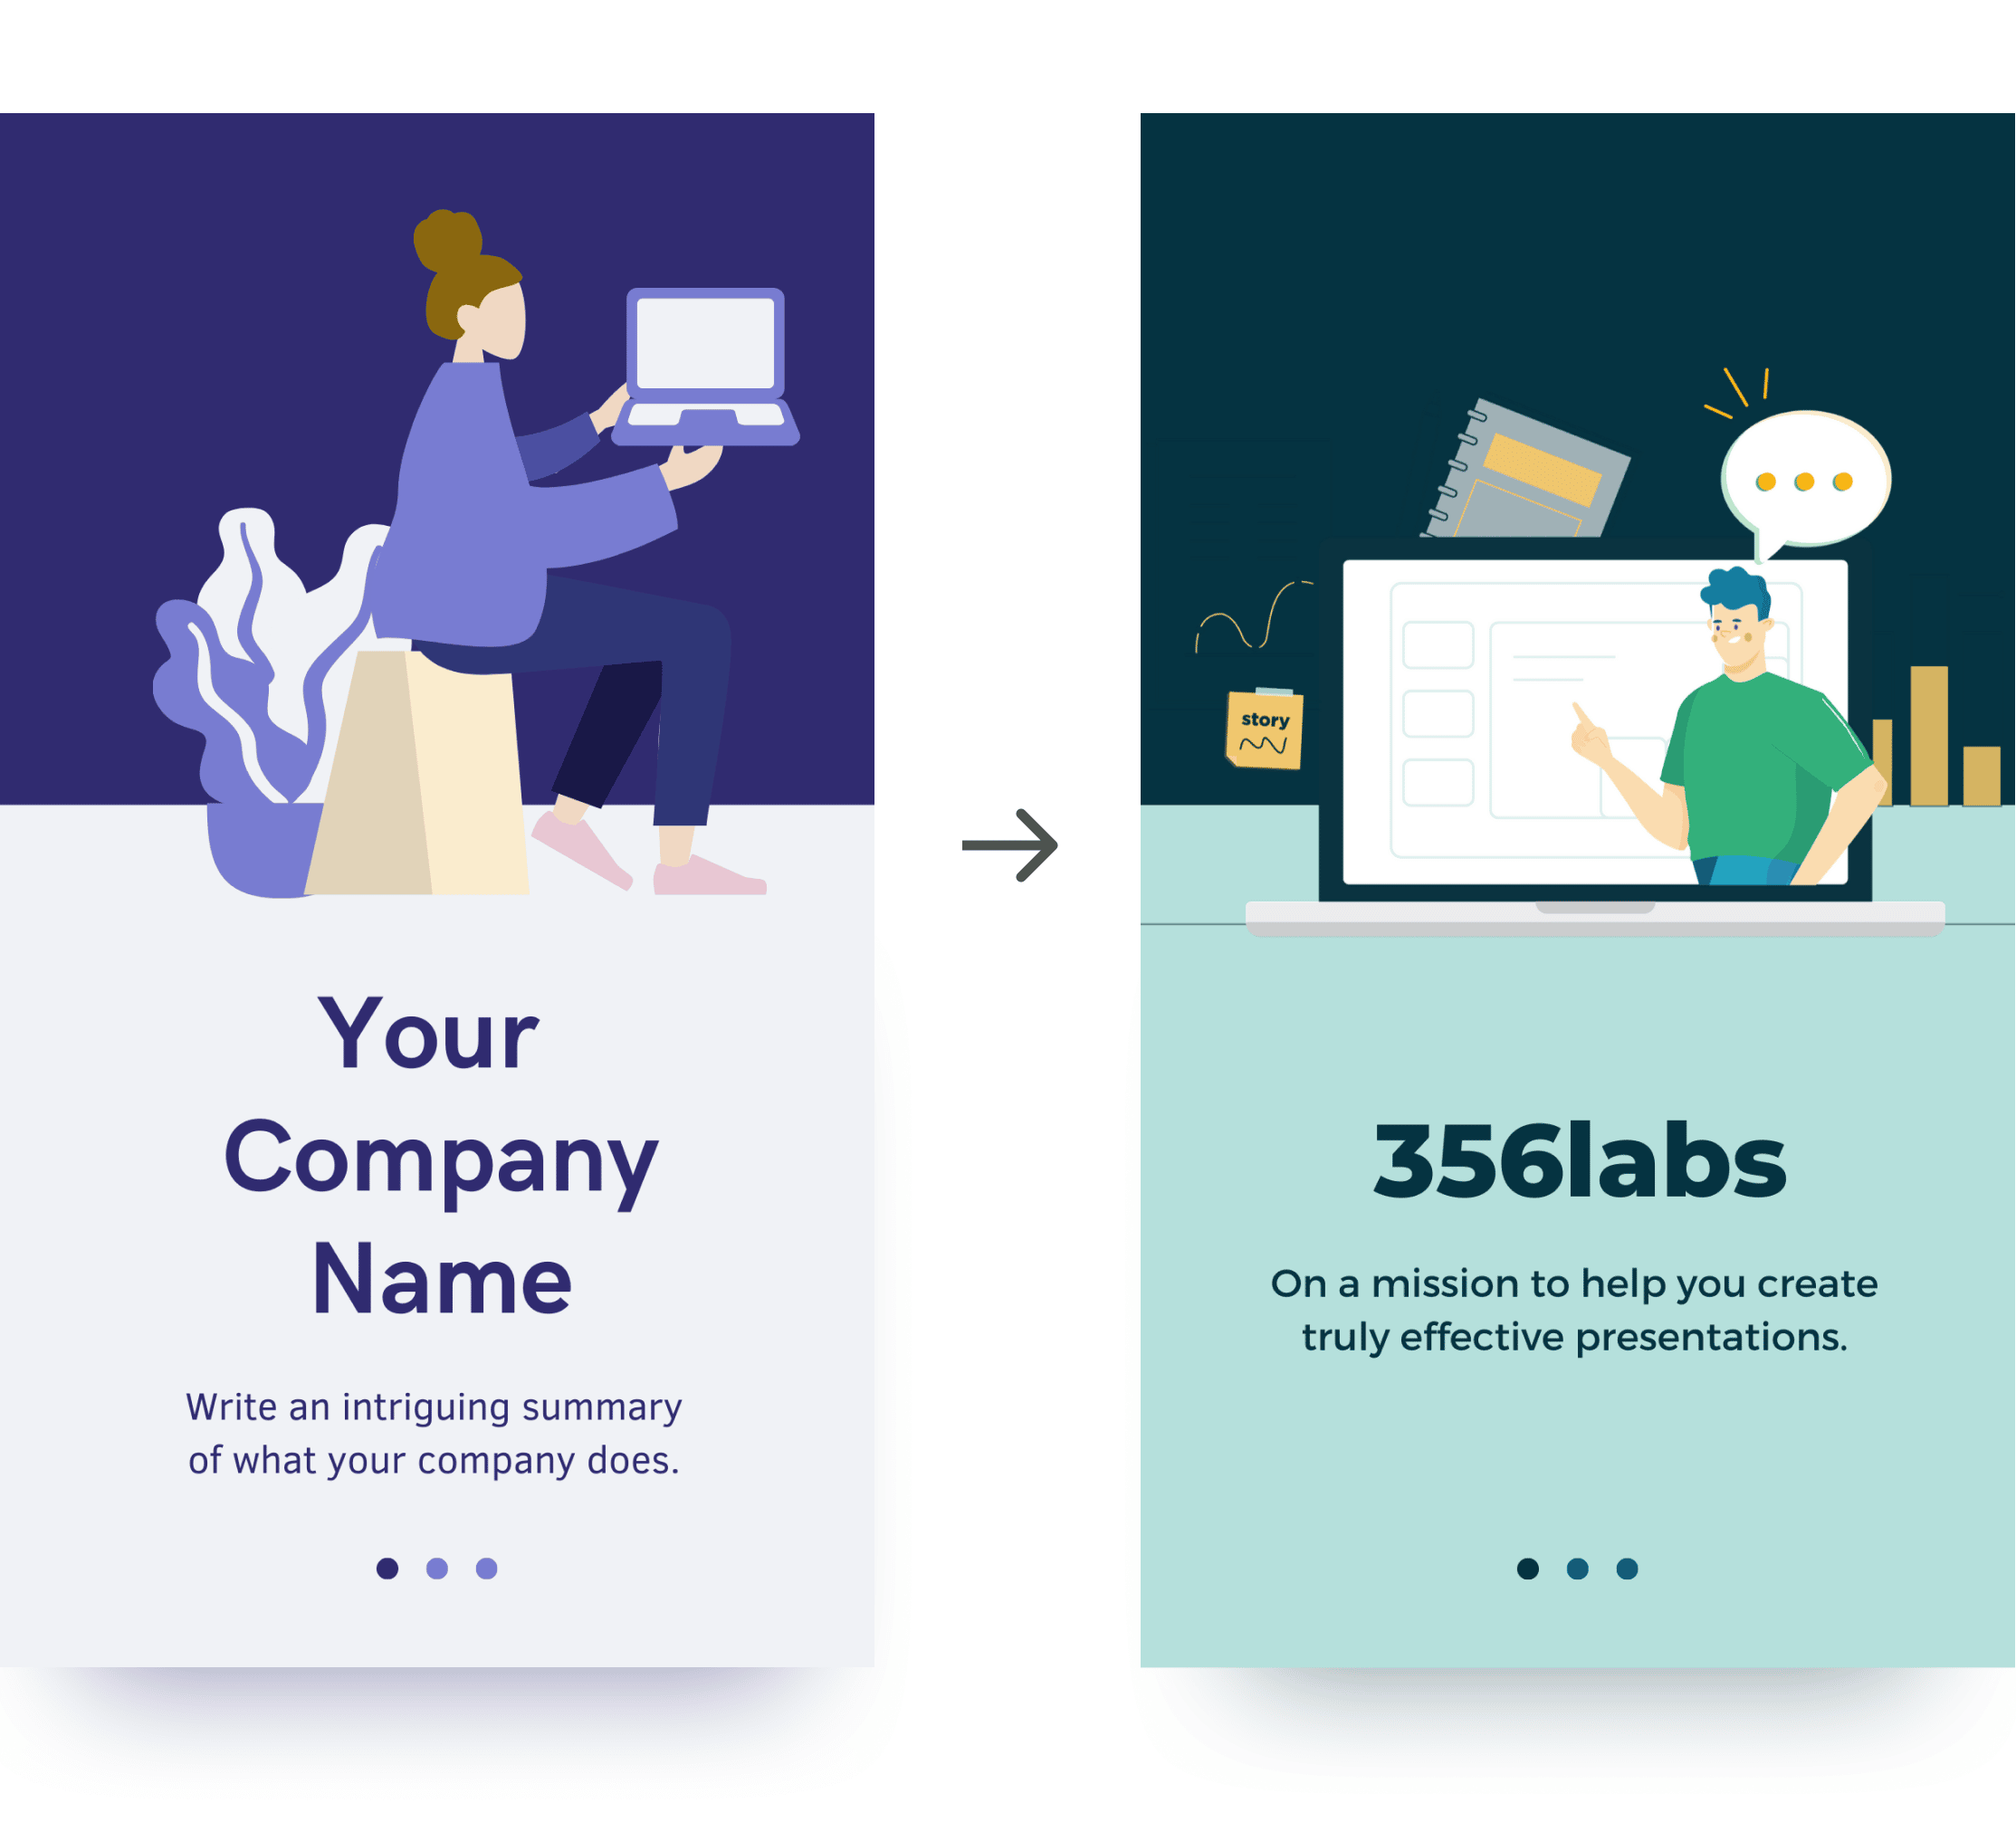 Mobile first presentation templates Canva